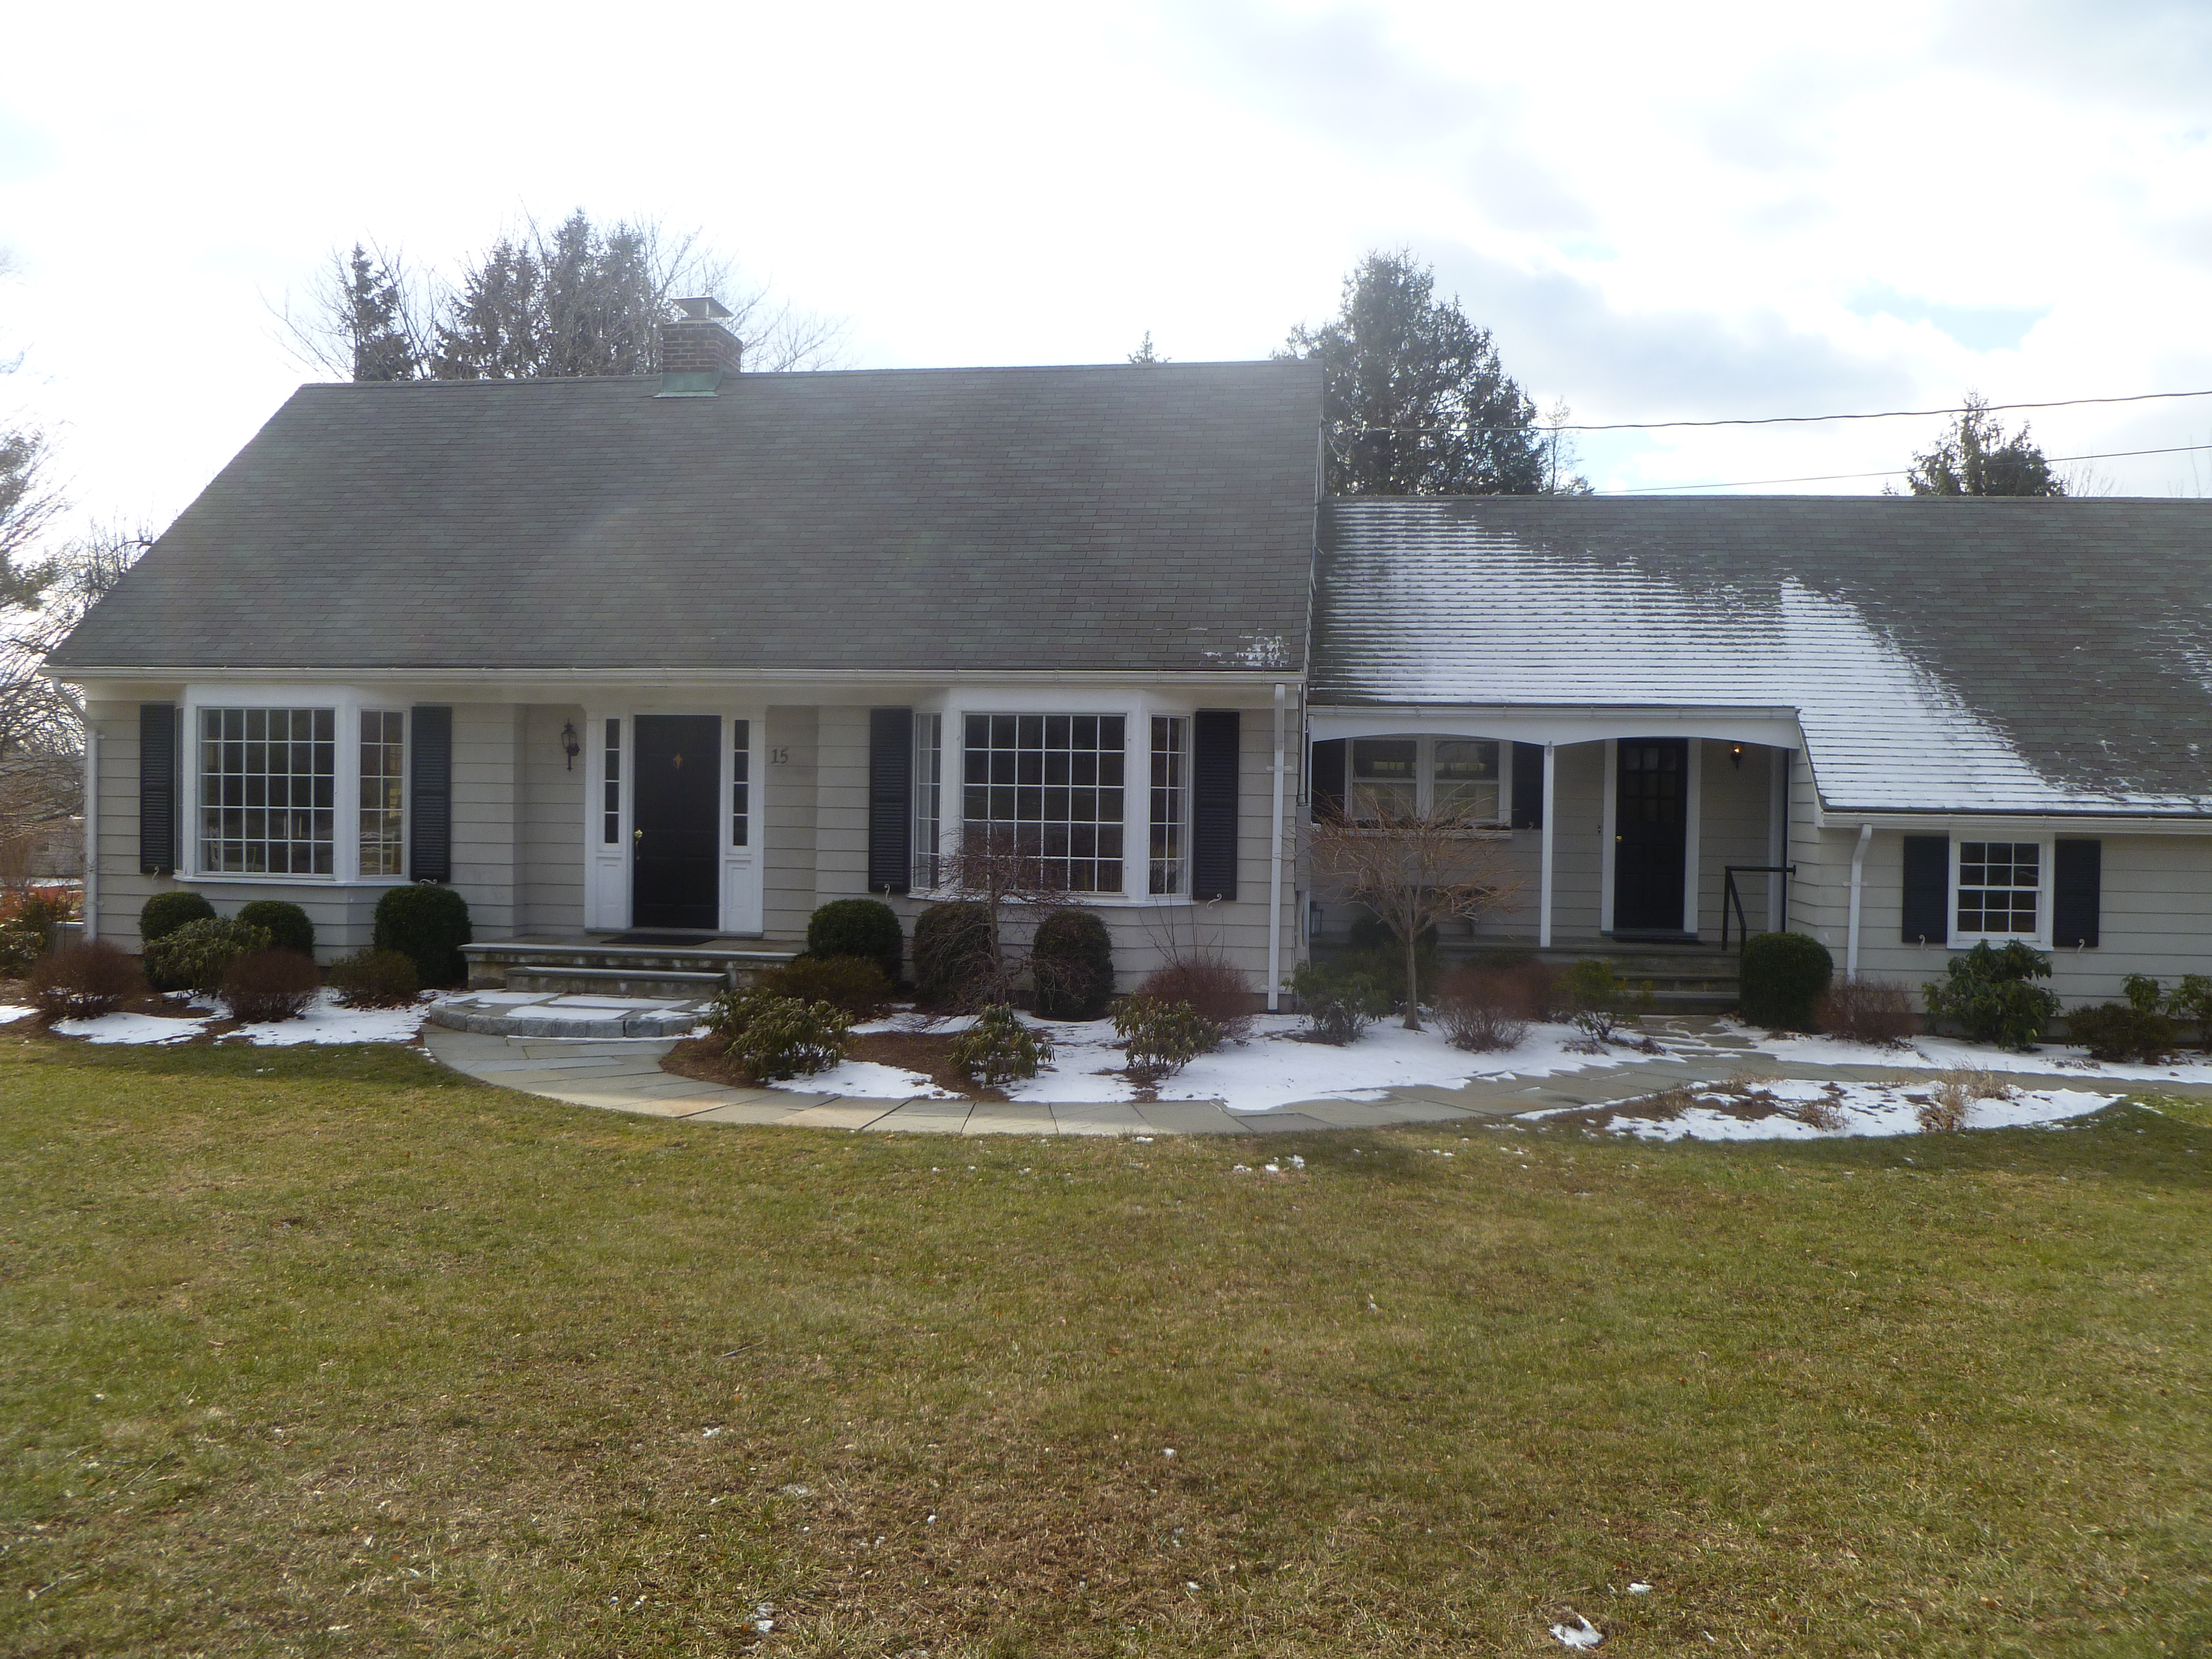 The house at 15 Far Horizon Drive, Easton, sold for $435,000.